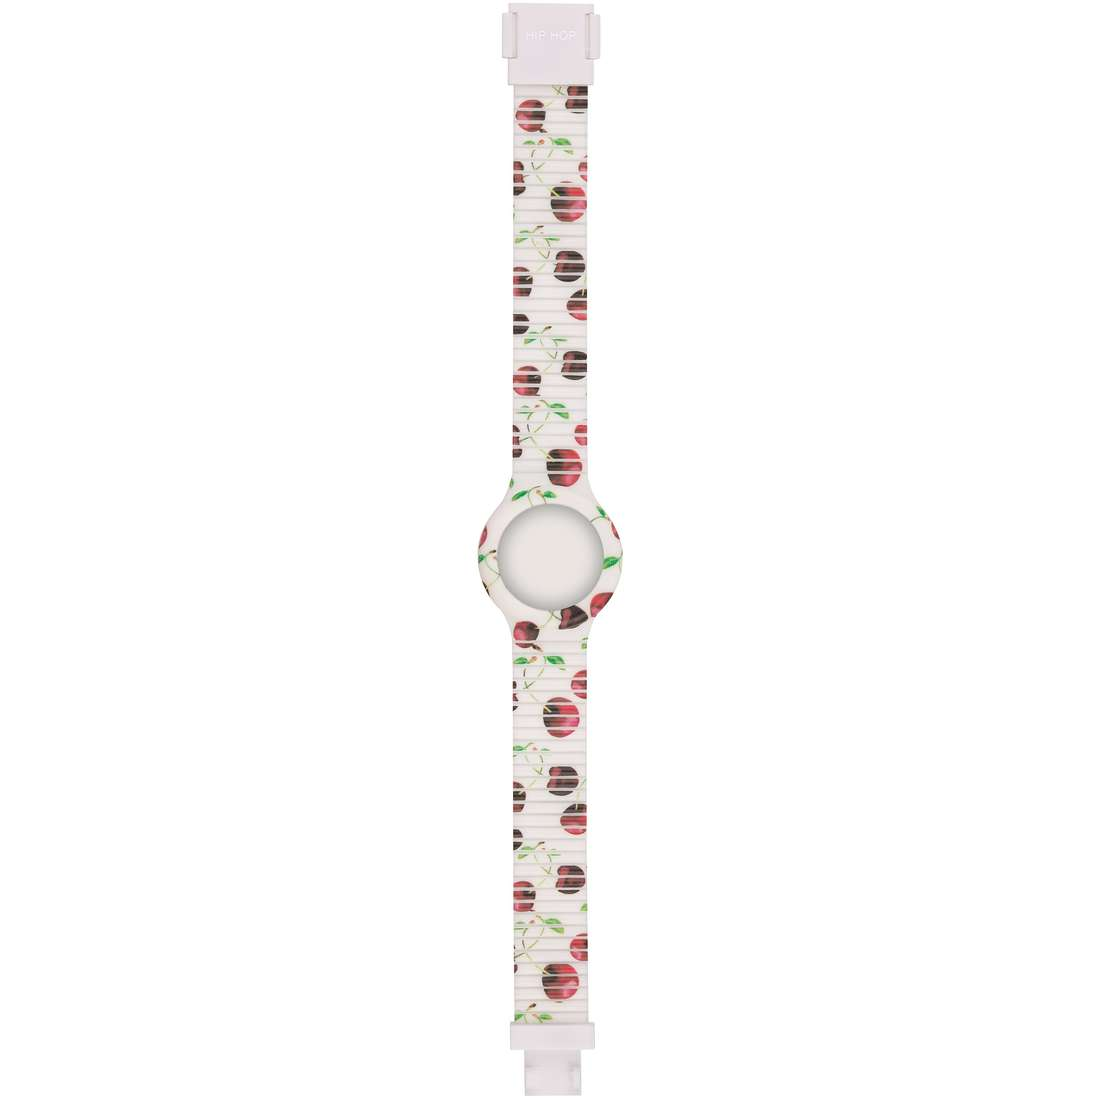 watch watch strap woman Hip Hop Fruit HBU0671